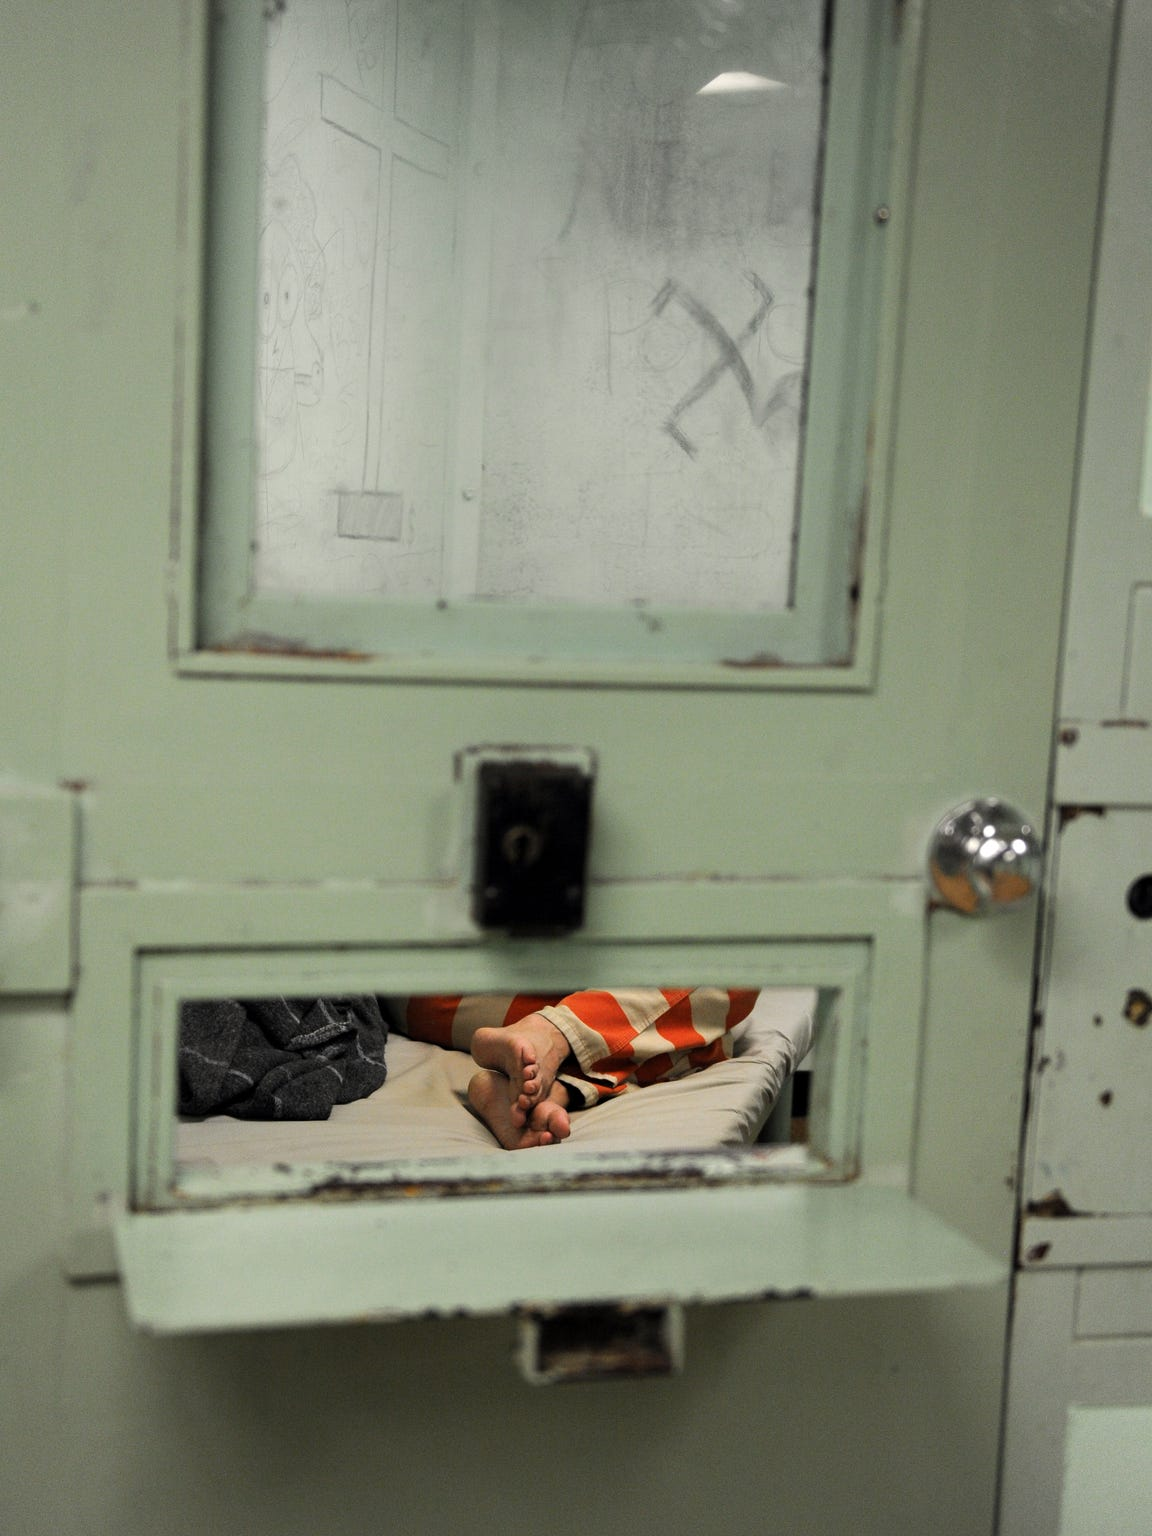 A prisoner sleeps during a mid-morning visit to the